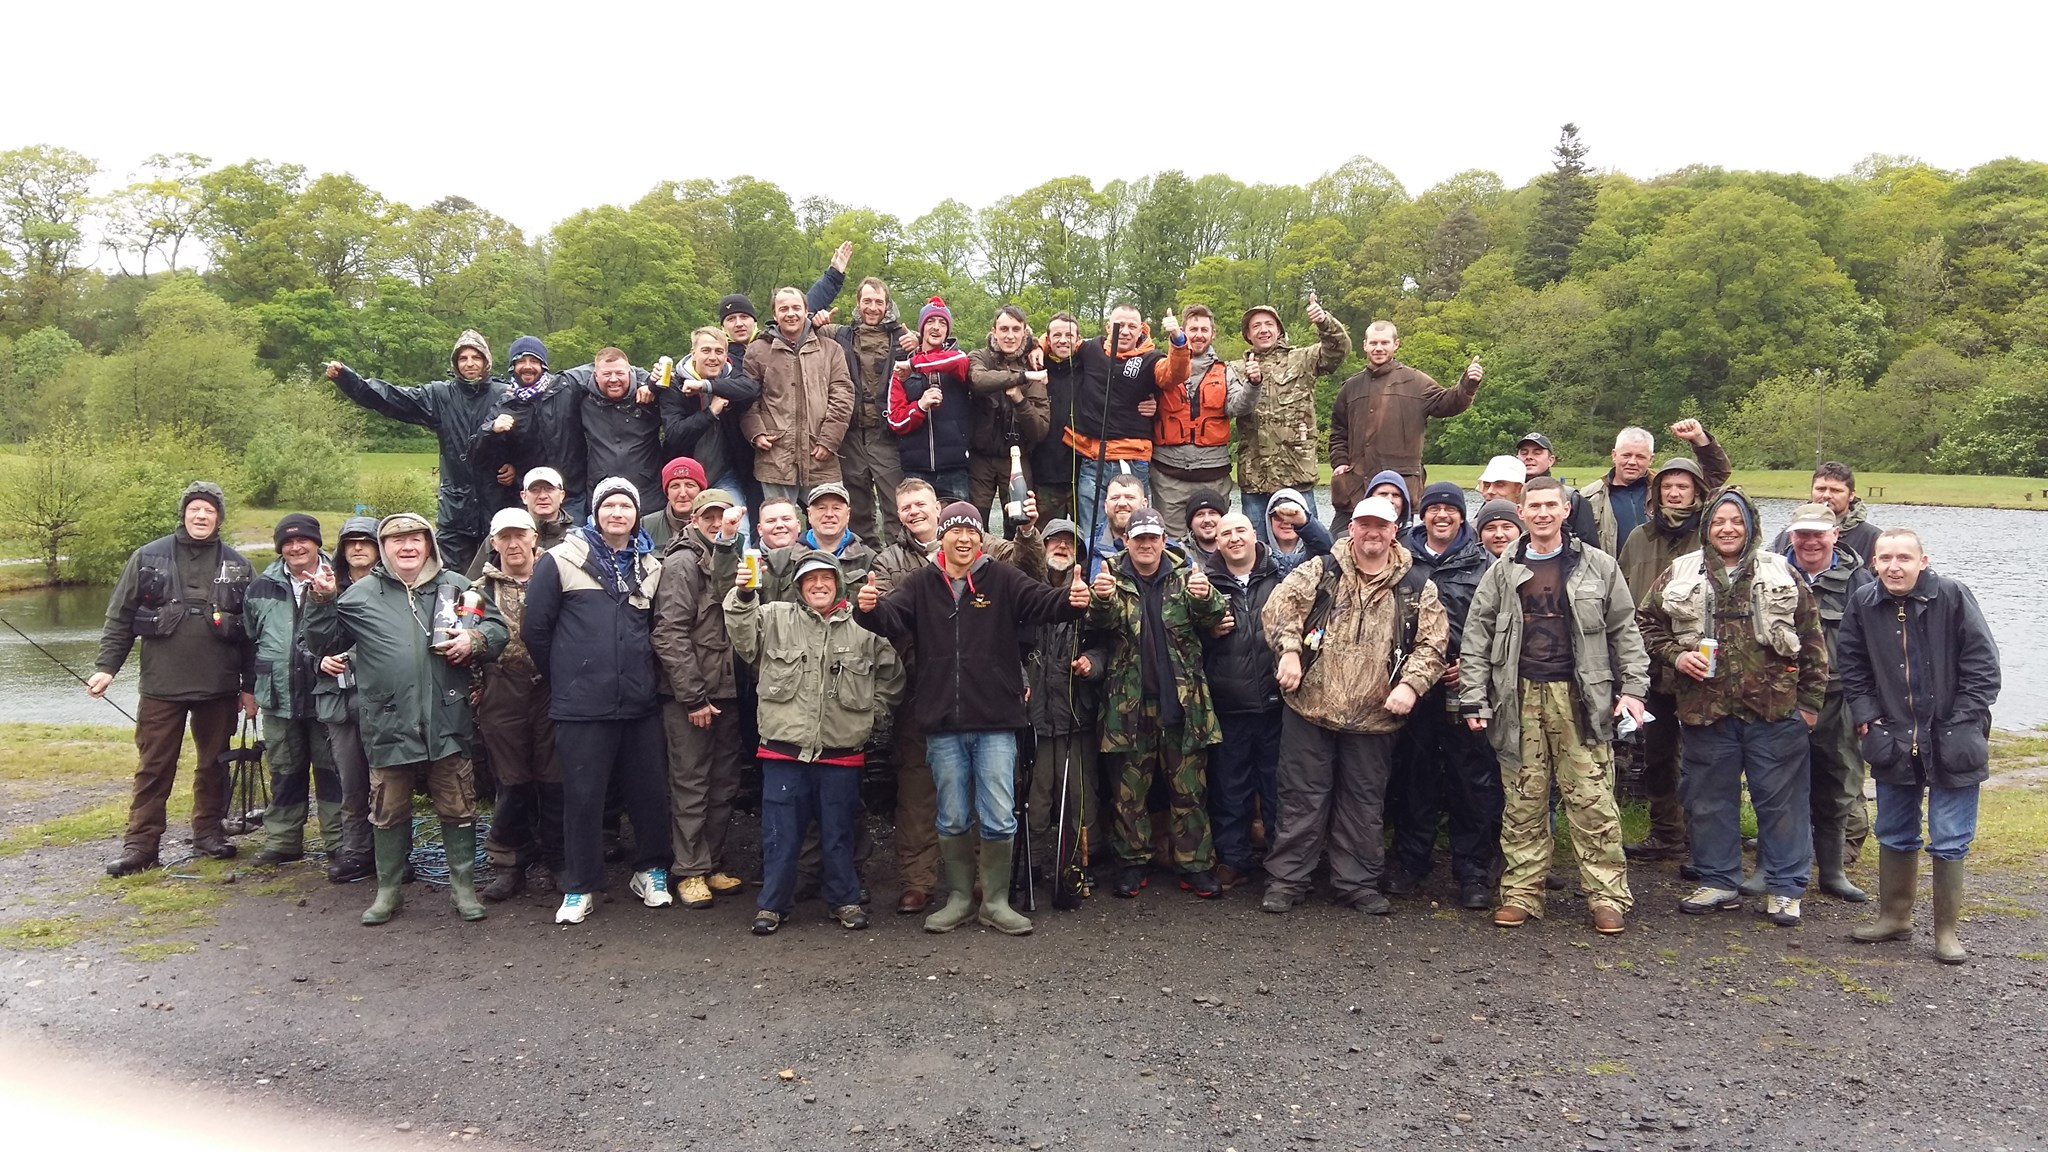 The Coyle Water Fishery Brexy Memorial Day raised an outstanding £1,209.